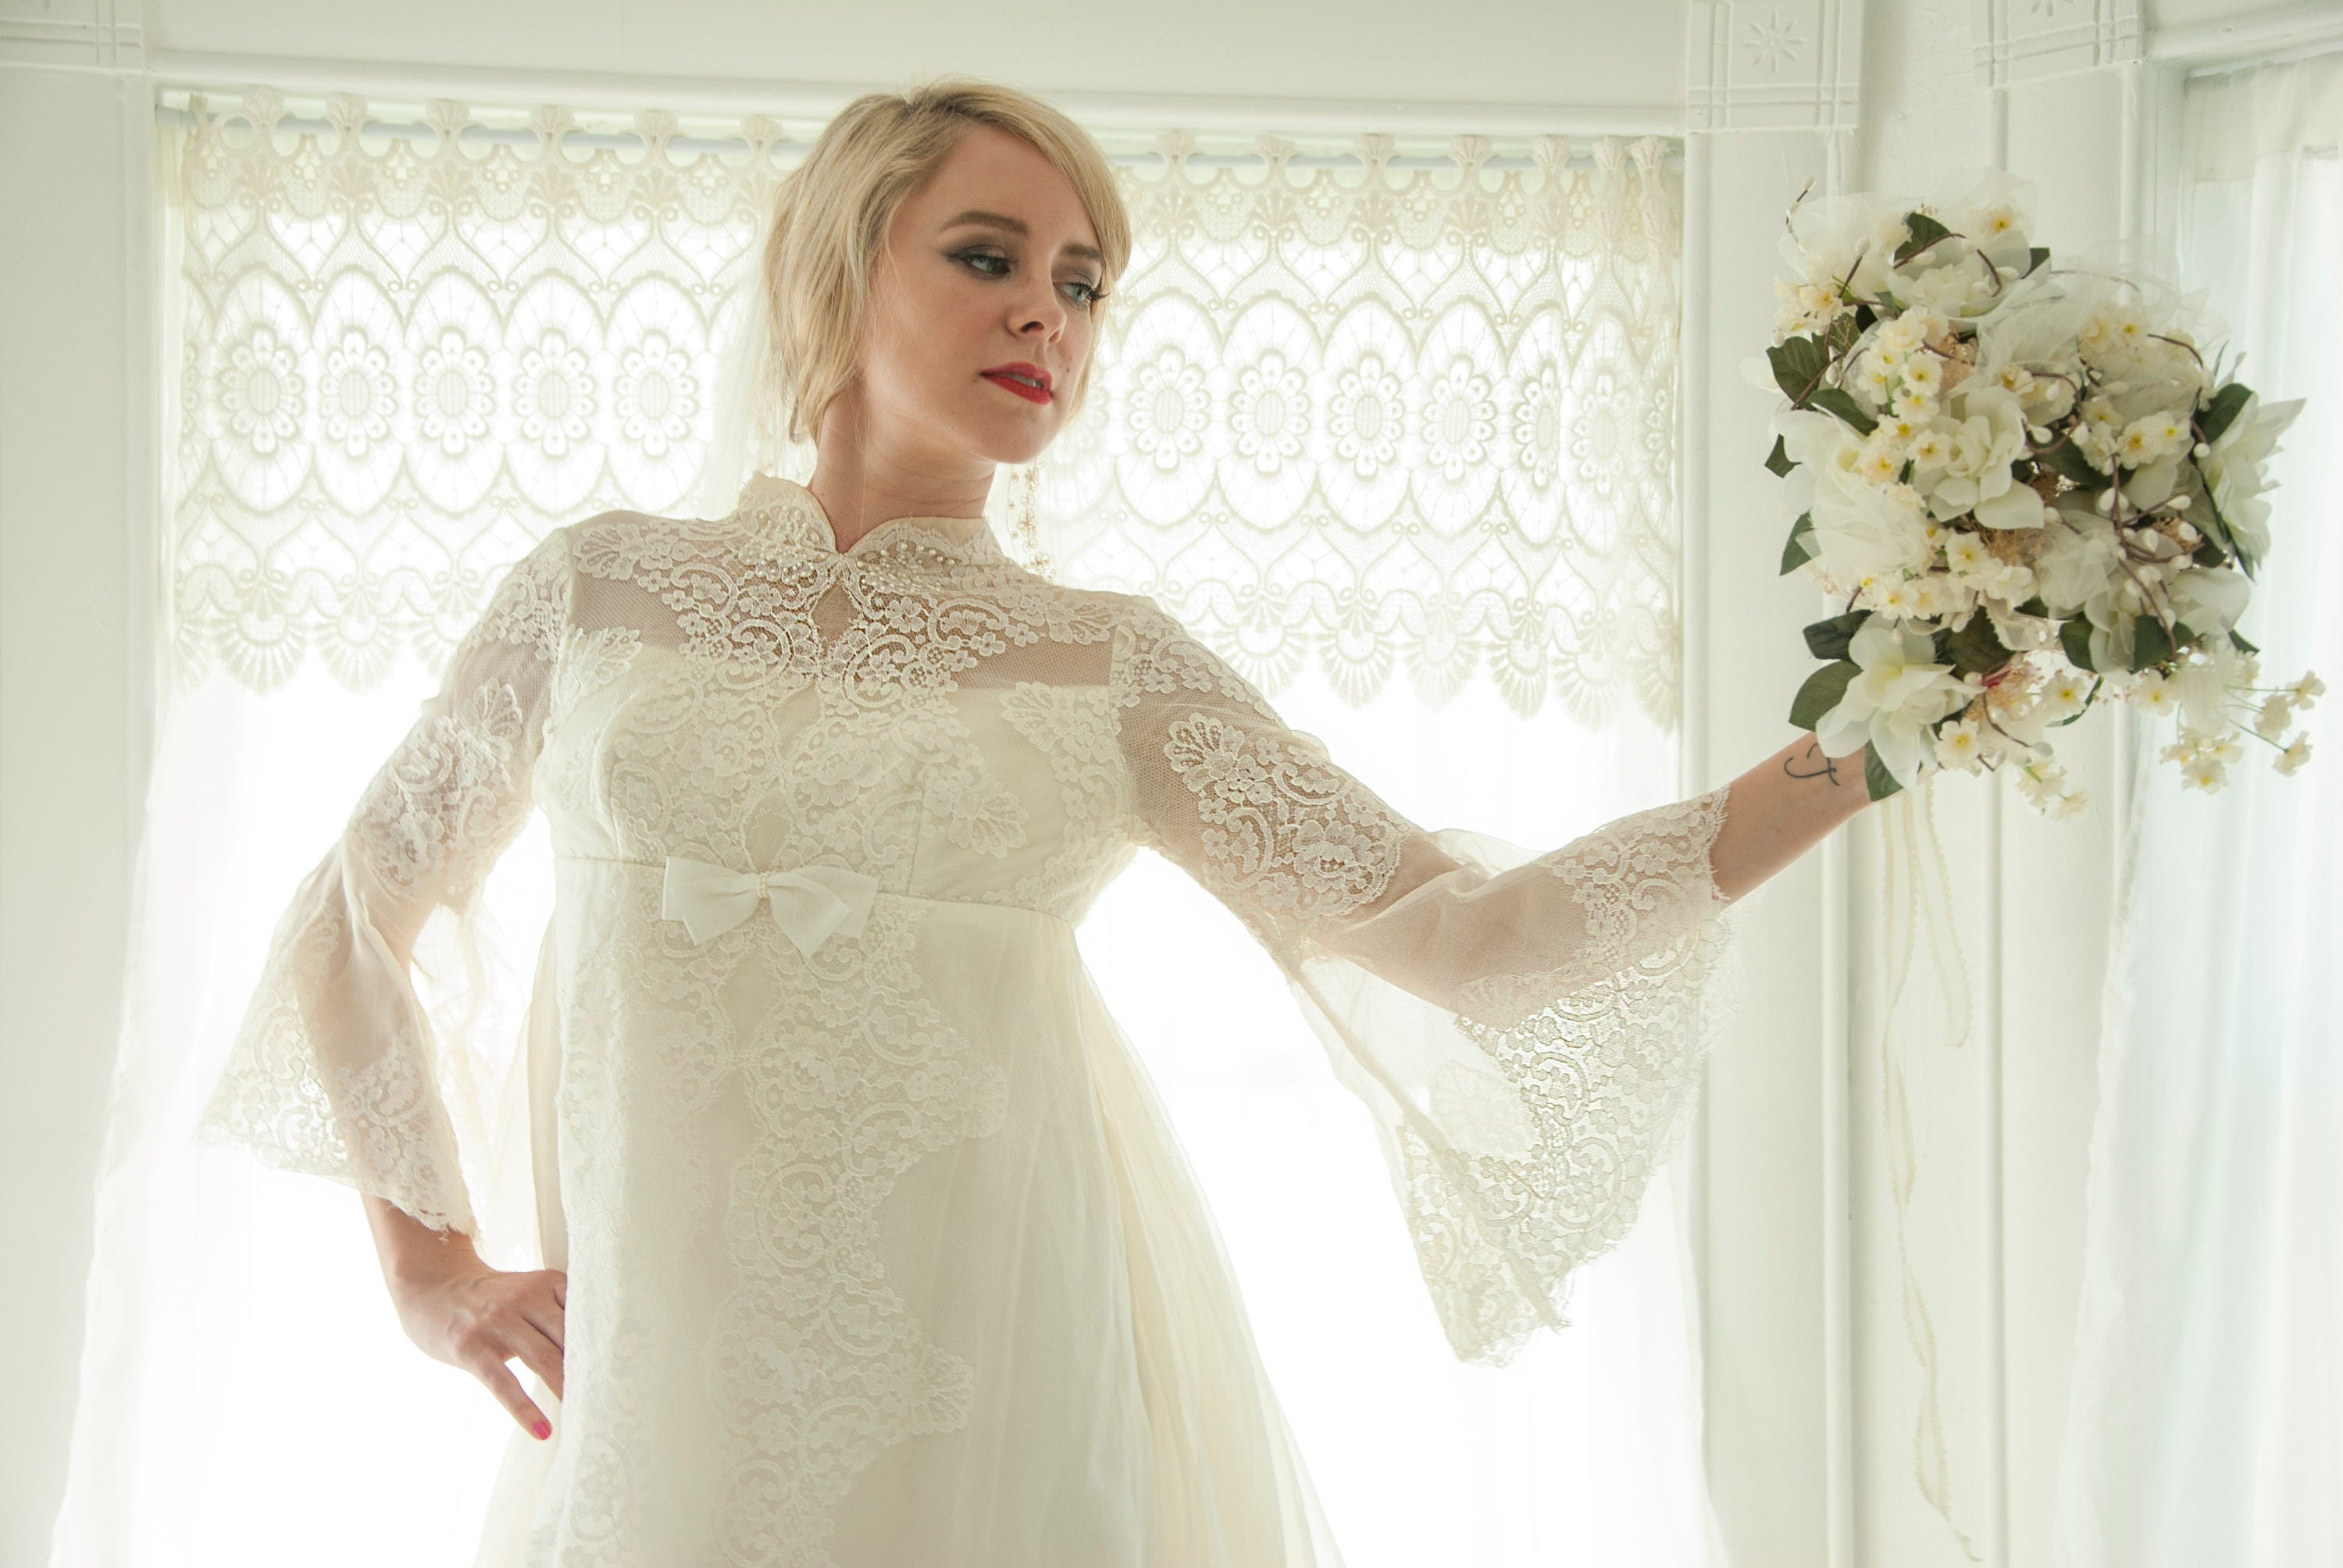 Vintage bell sleeve wedding dress 1960s gown empire waist description bell sleeve wedding dress ombrellifo Image collections